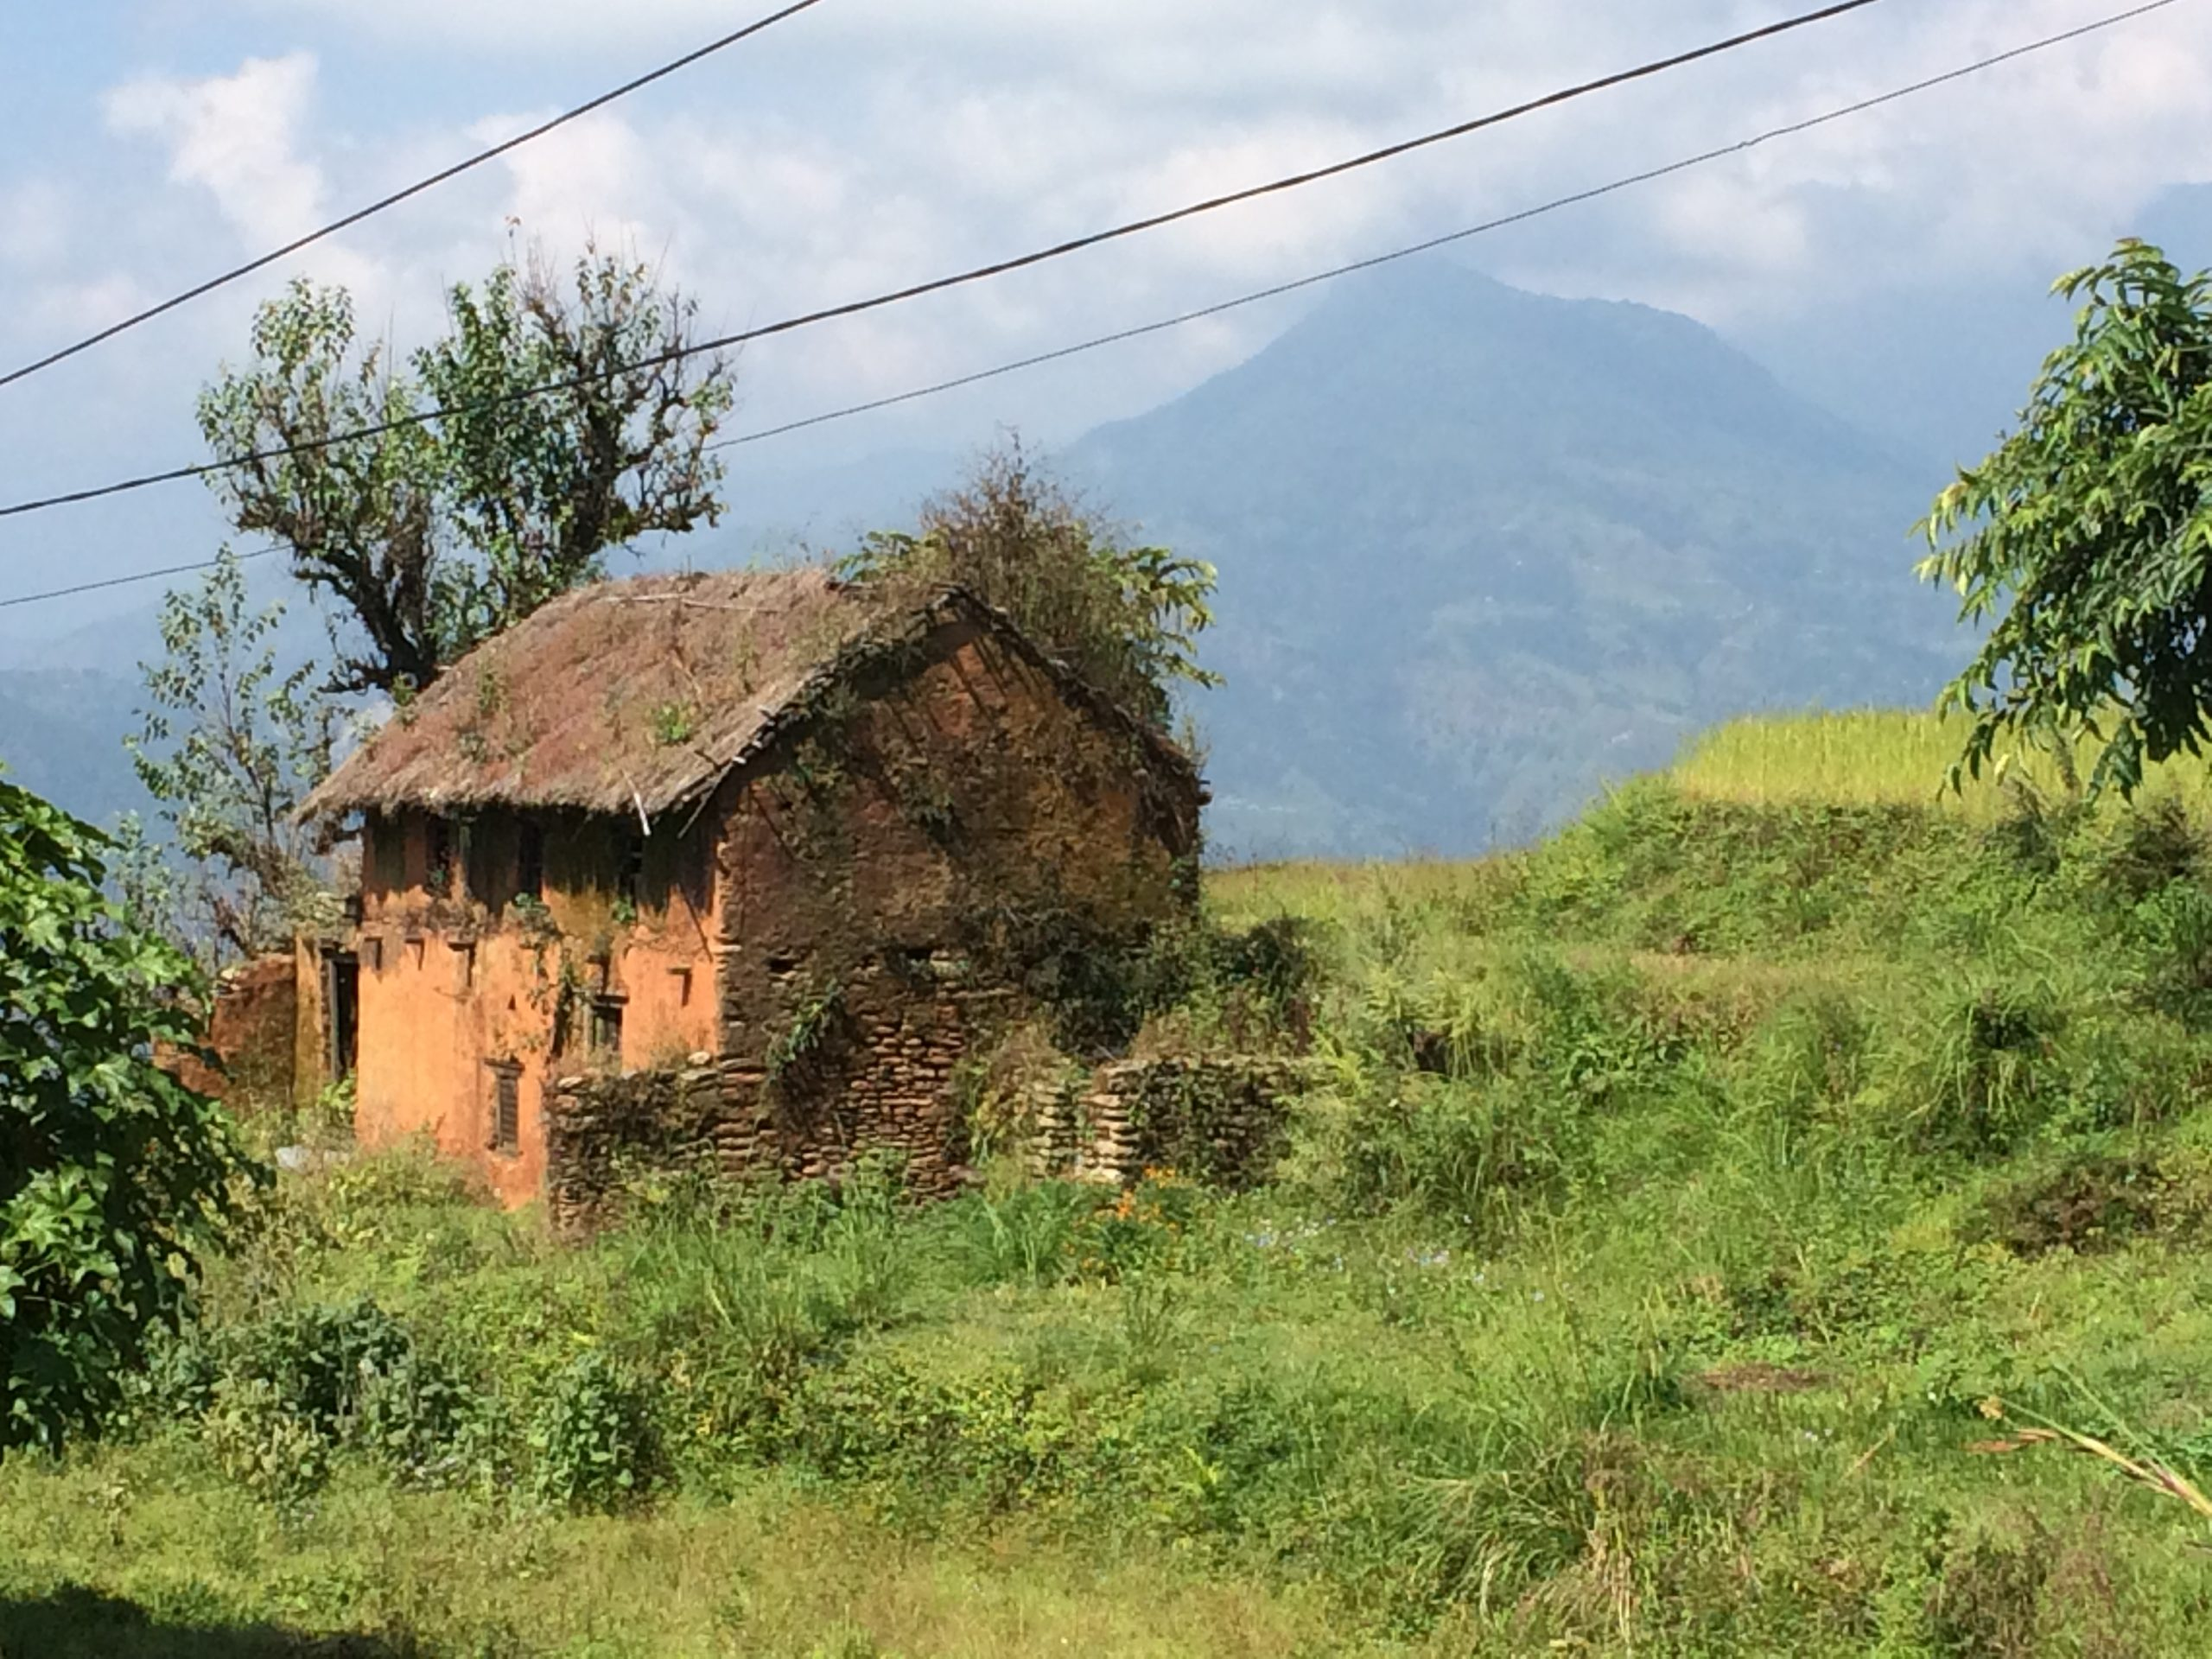 small house on nthe hillside with the mountains in the background